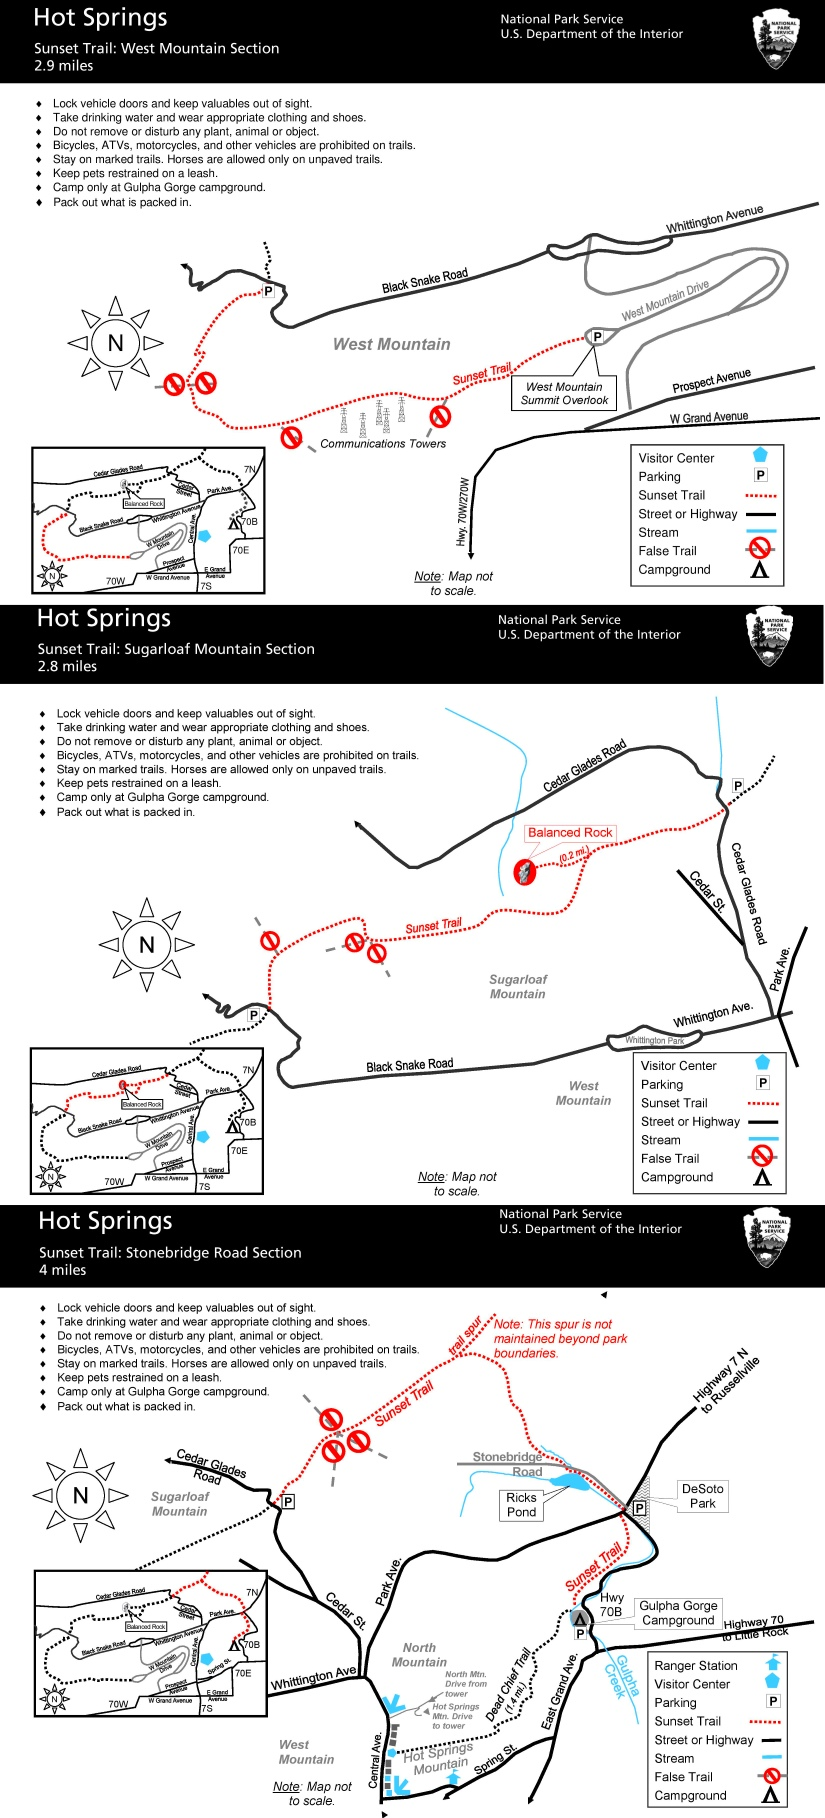 Hot Springs Sunset Trail map